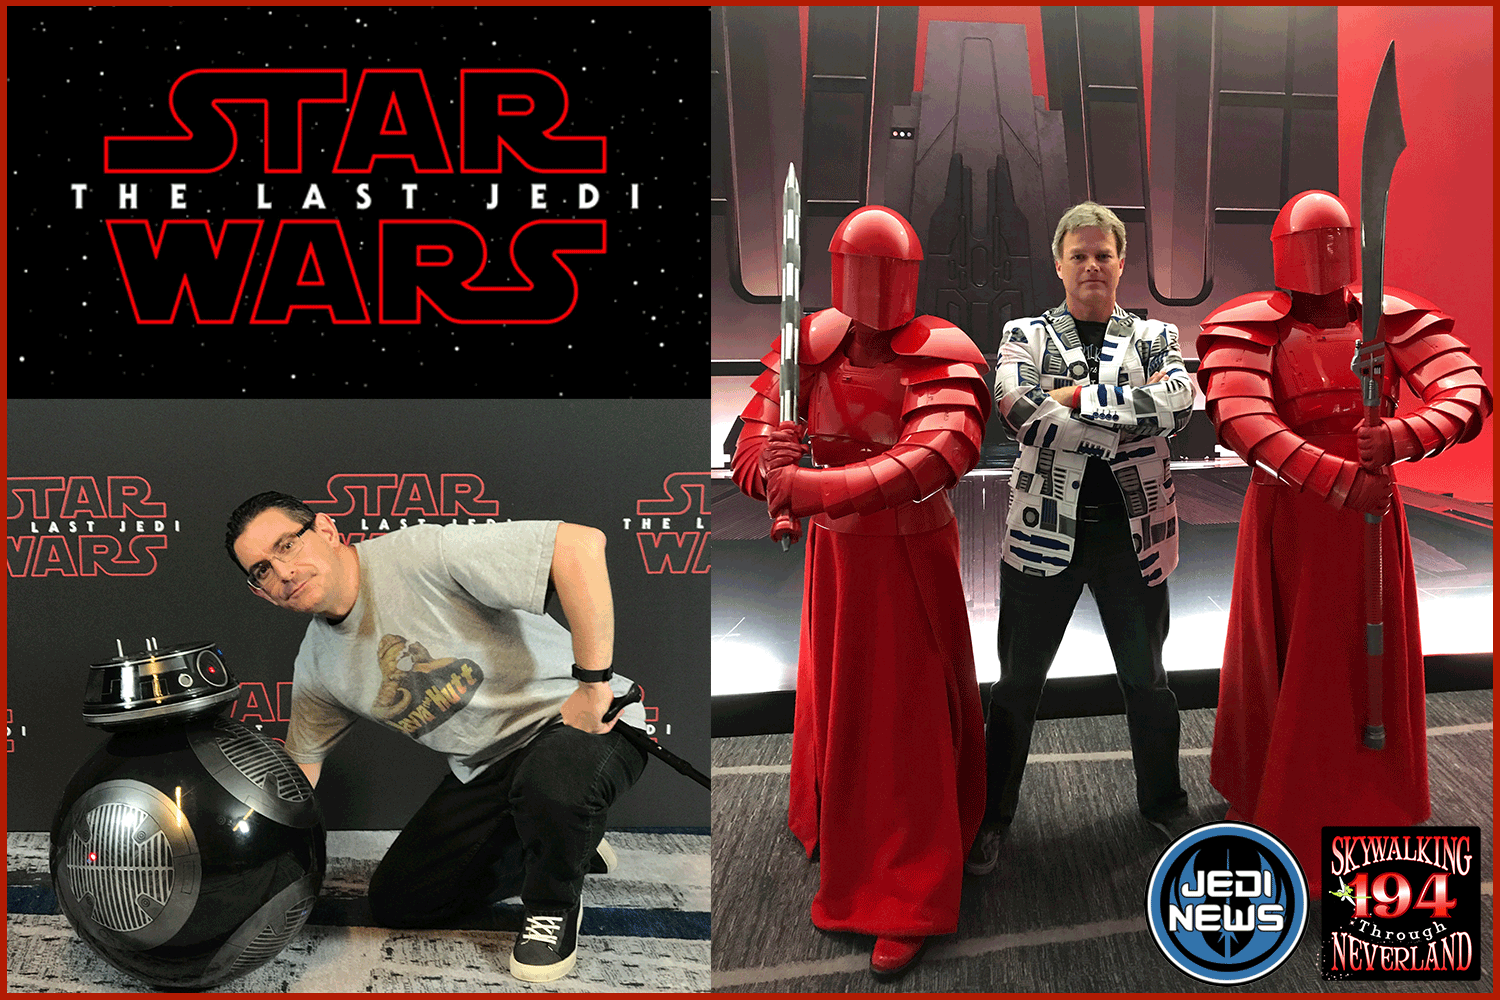 Skywalking Through Neverland #194: The Last Jedi Global Press Event